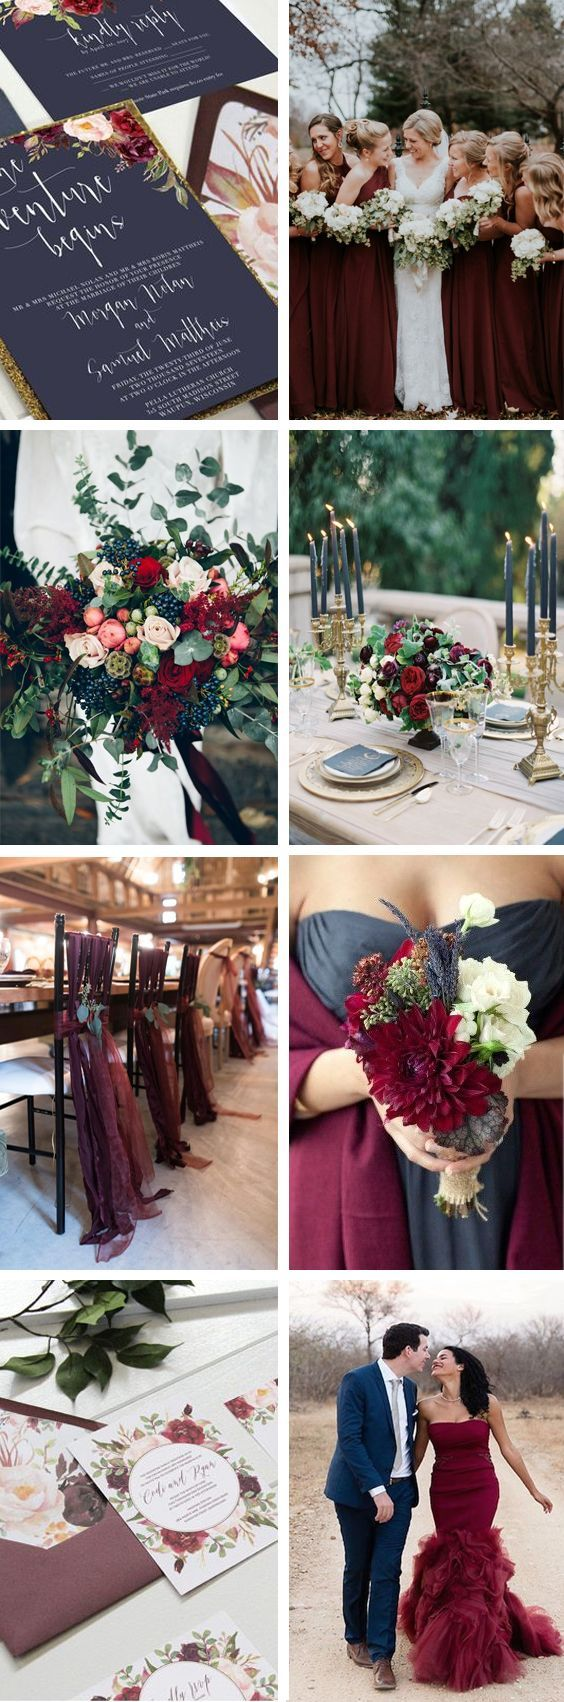 Best ideas about navy wedding centerpieces on